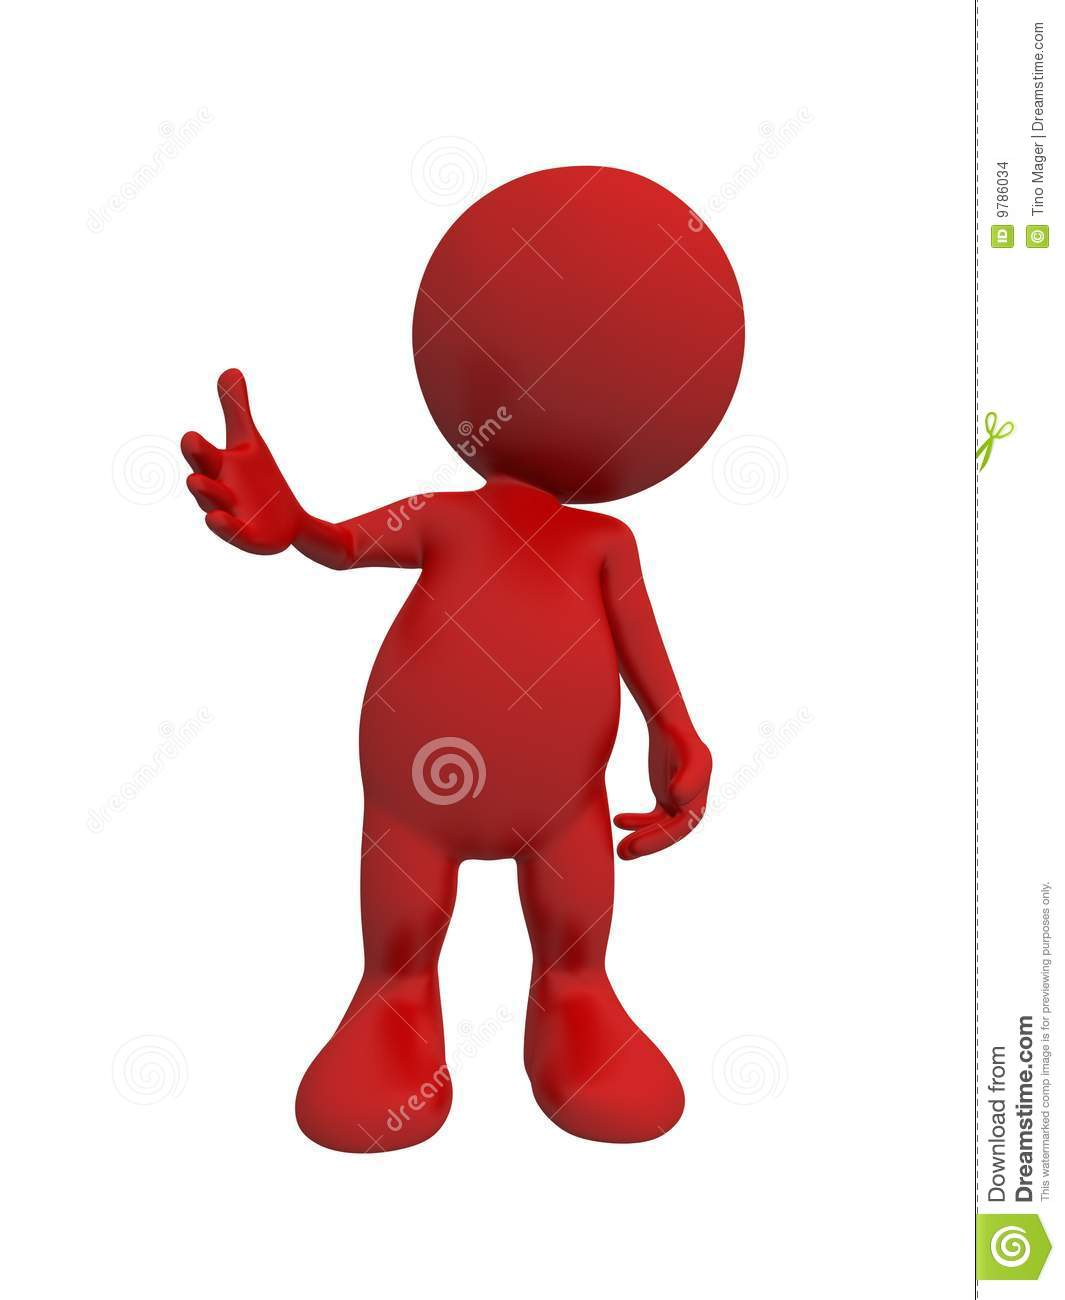 red welcome character person stock images image 9786034 red heart clip art free red heart clip art free